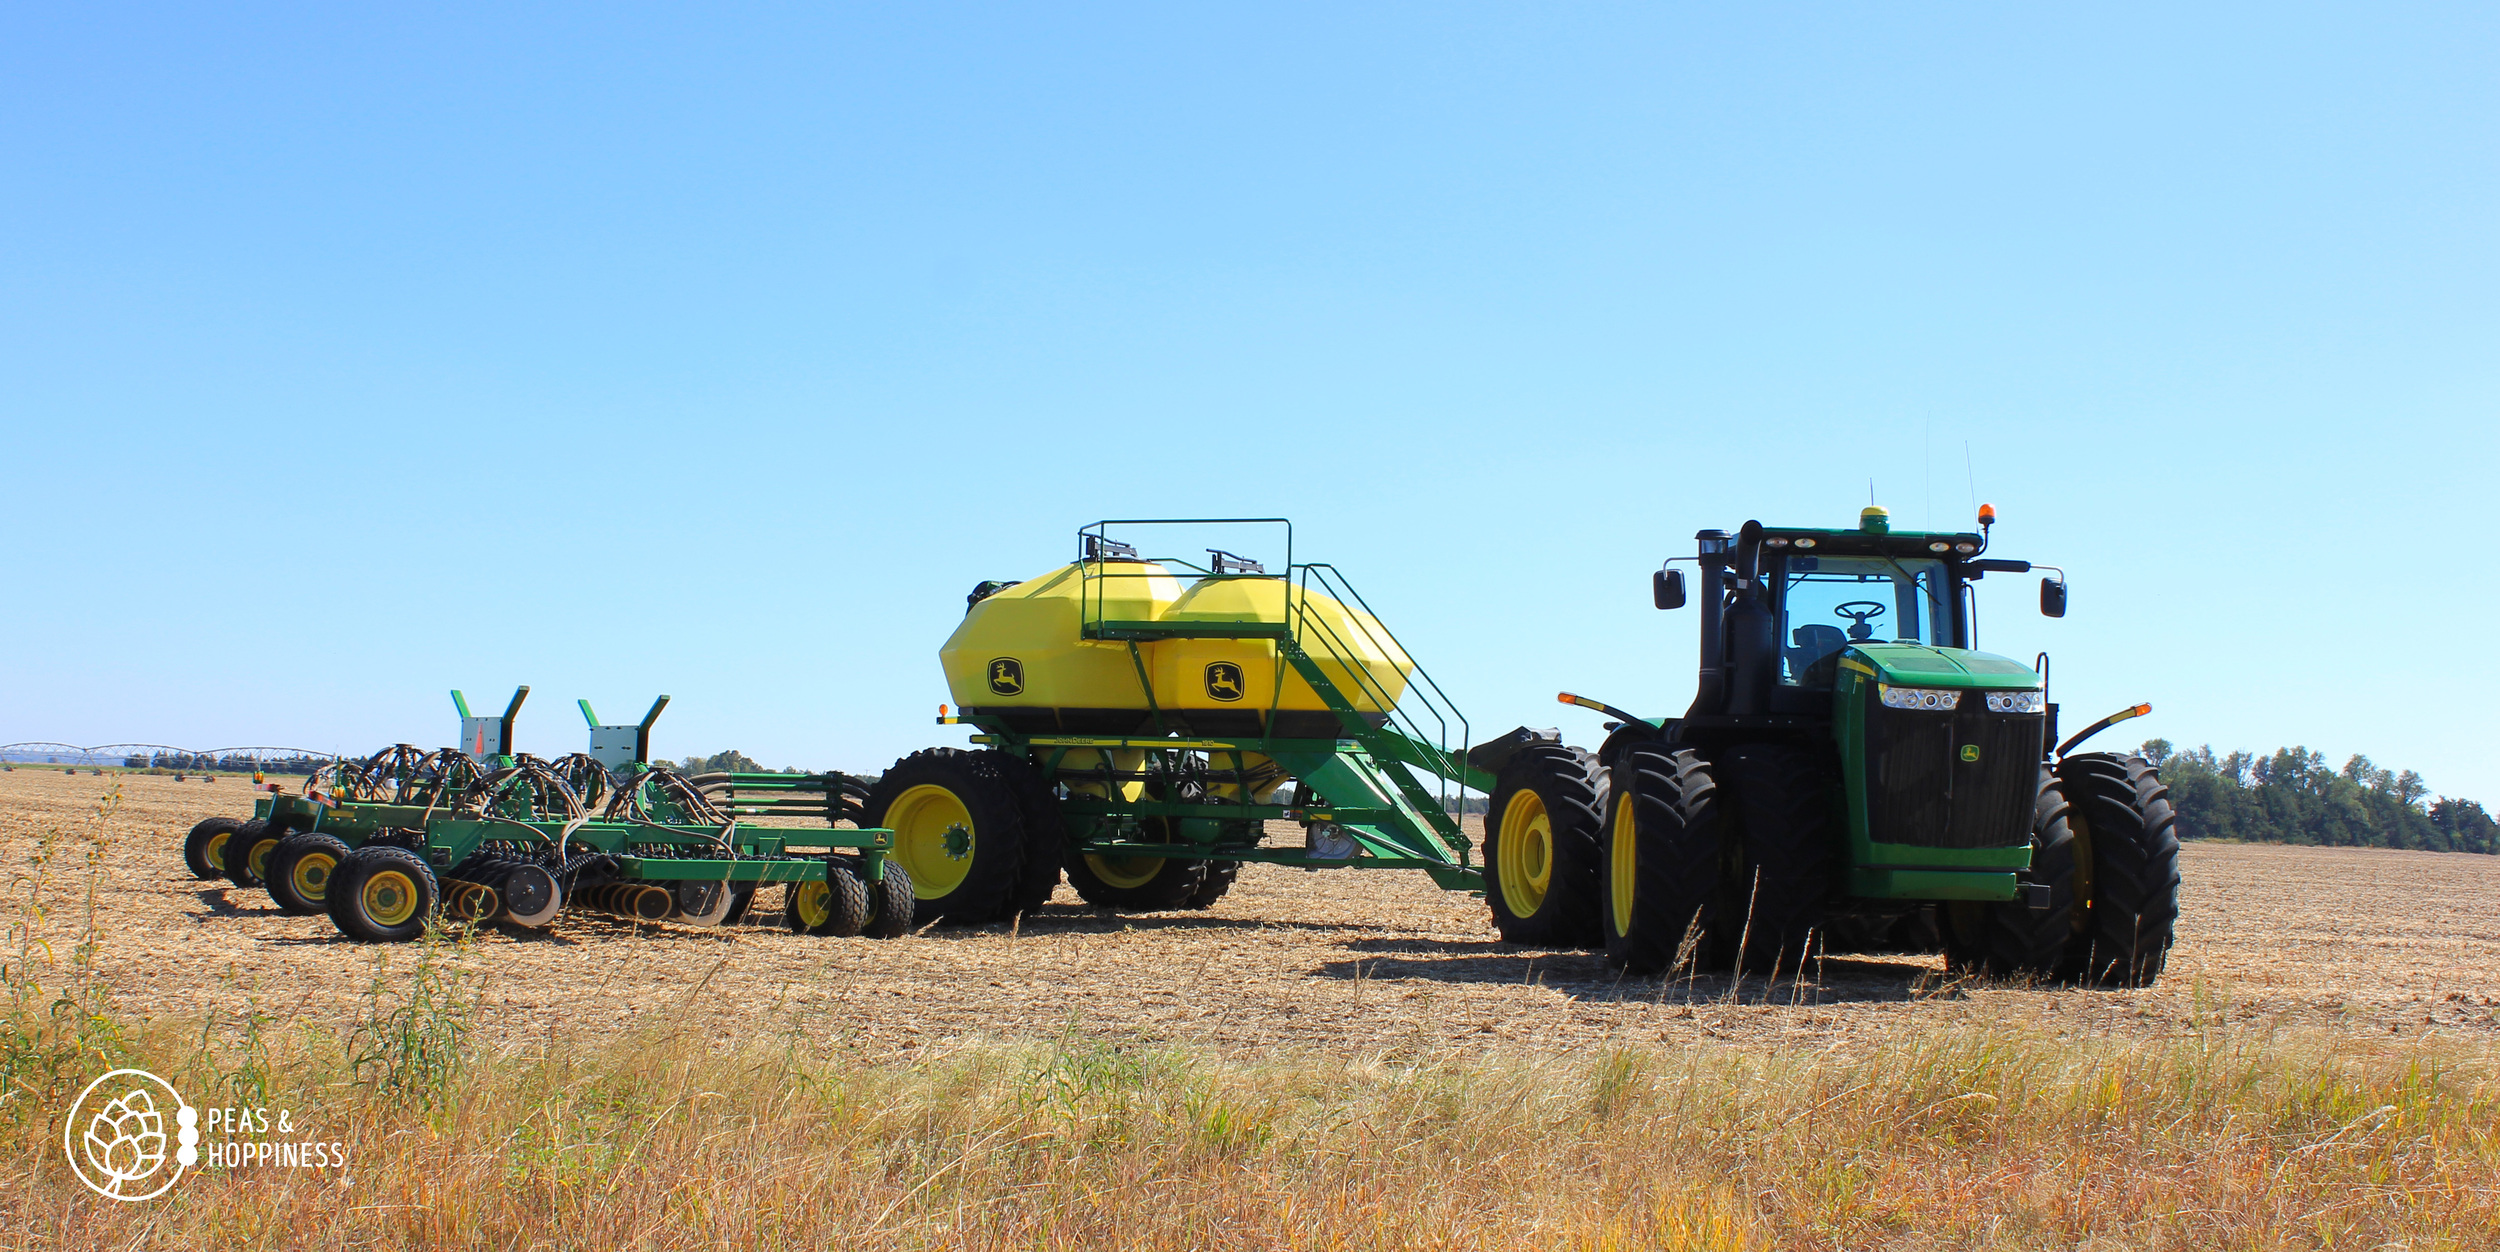 The air-seeder, used to drill wheat. The front hopper contains wheat seed; the rear hopper contain dry synthetic nitrogen